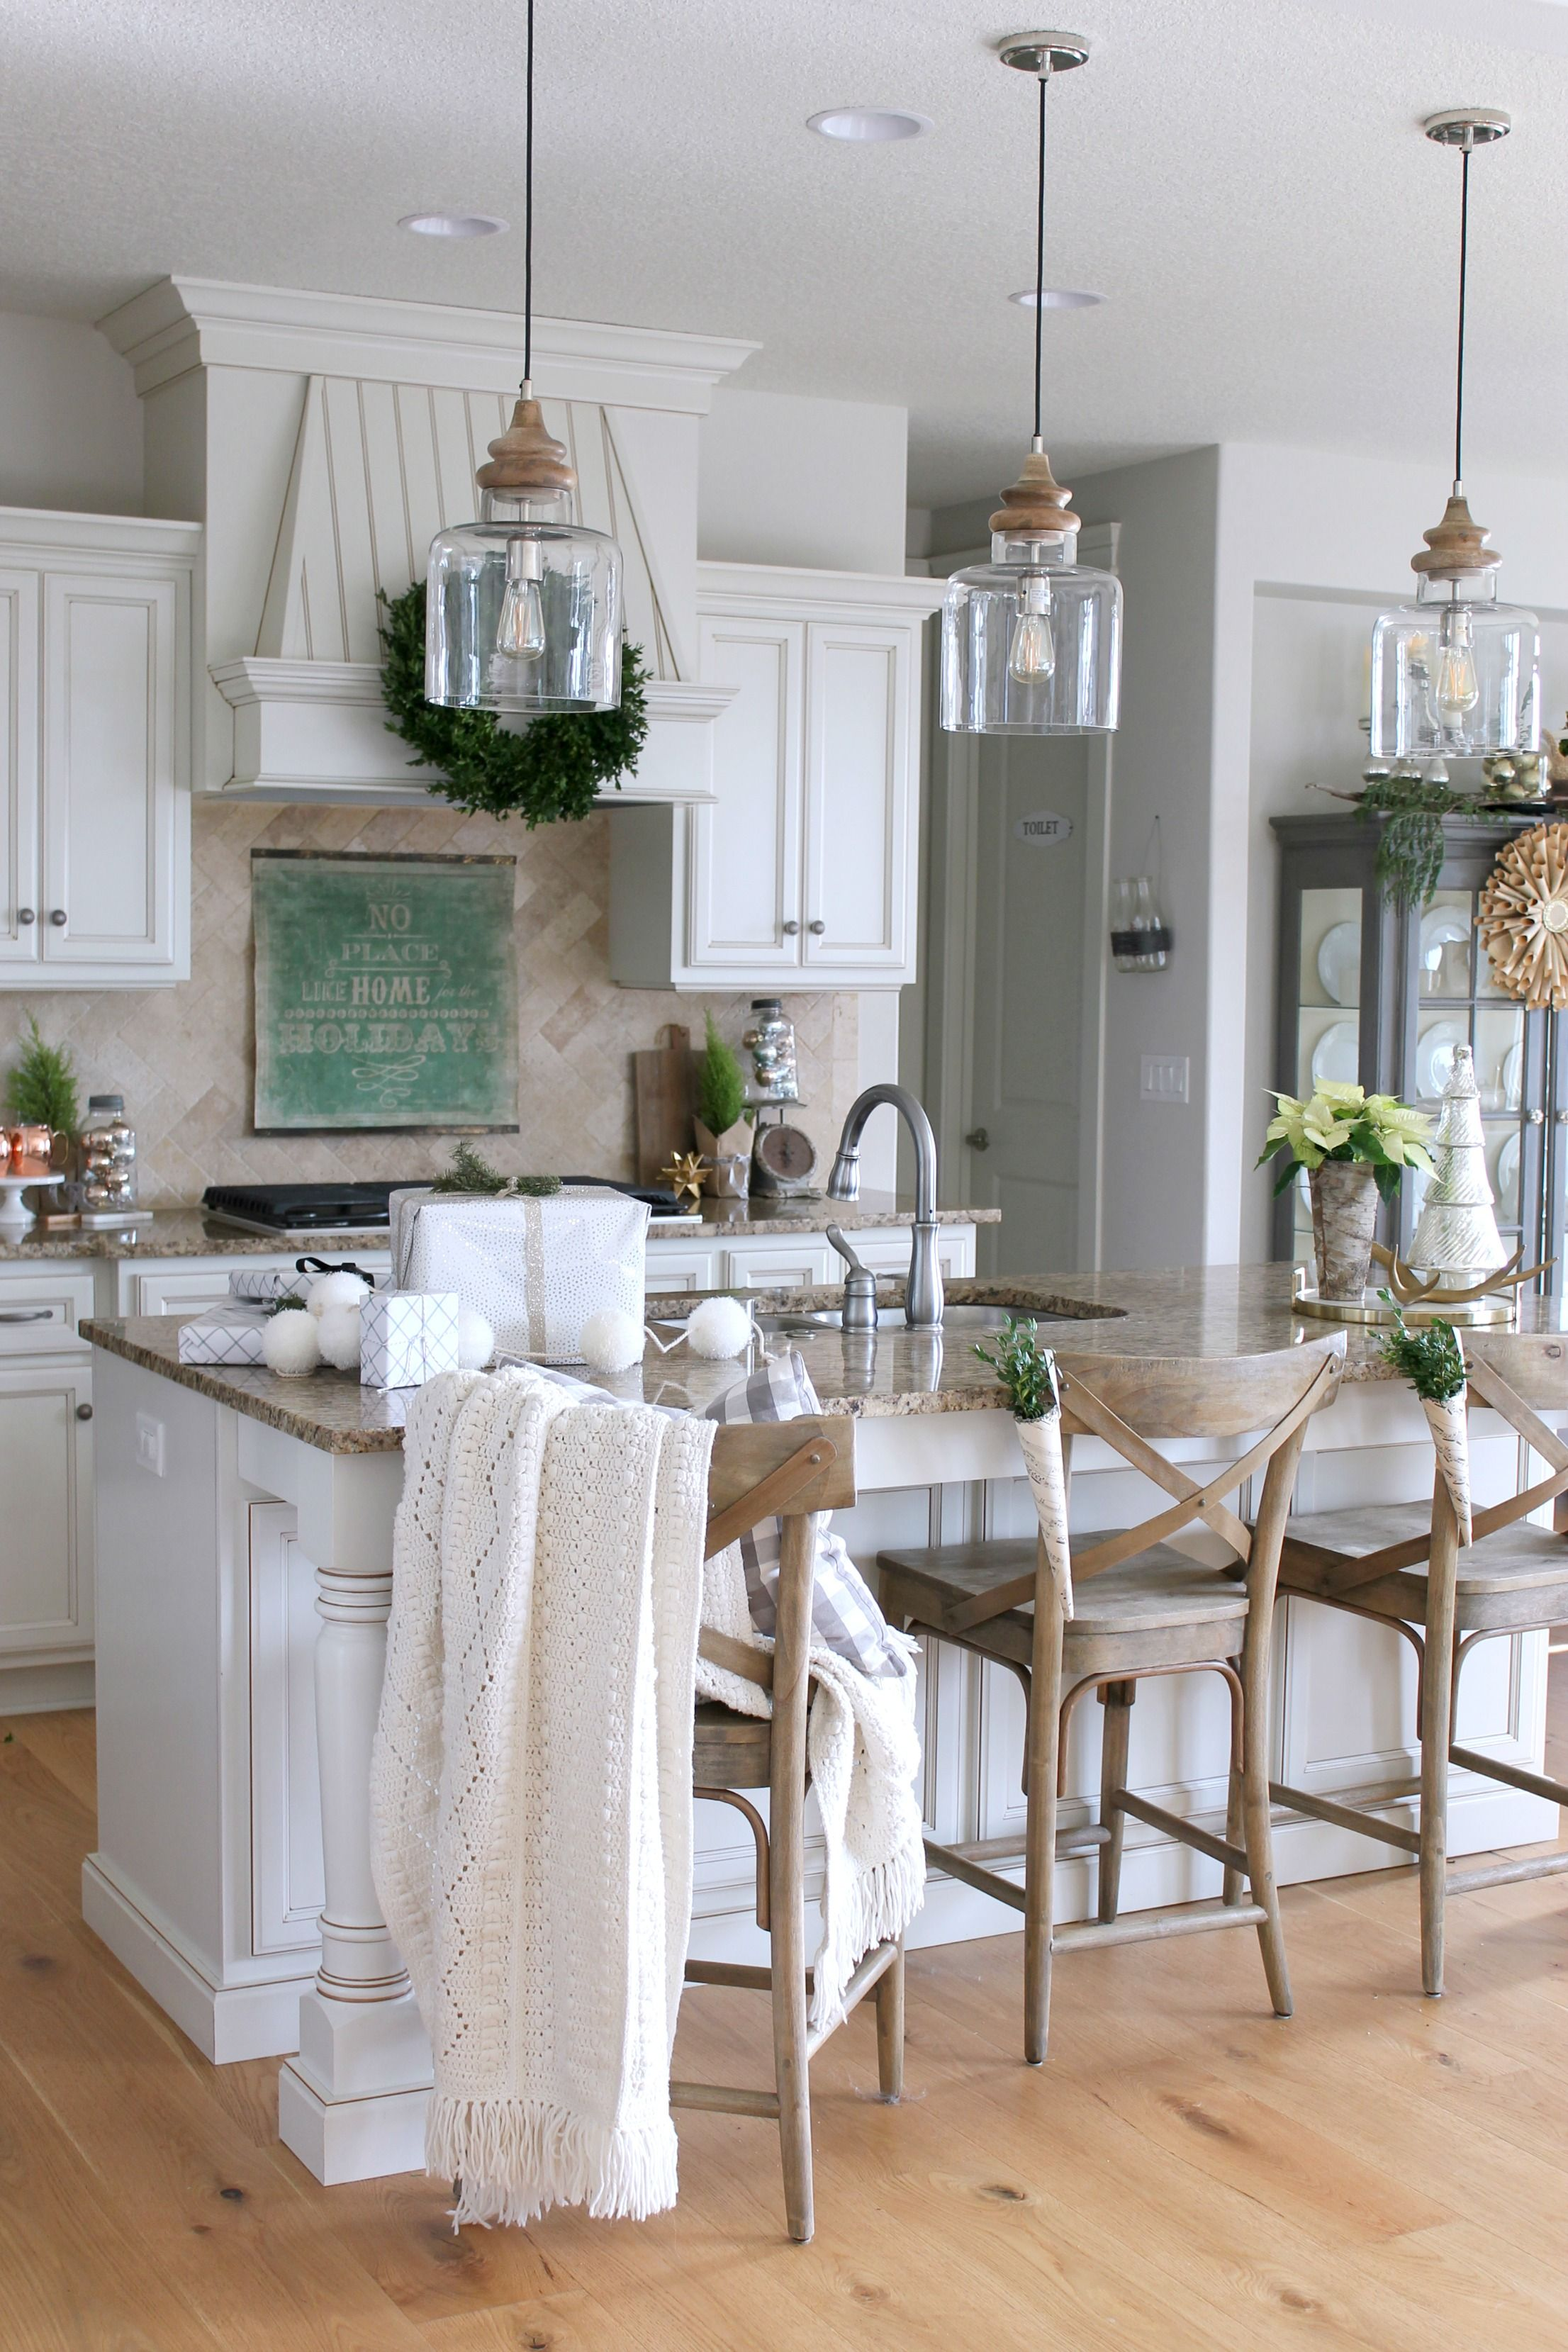 above ideas coordinate find well white decoration the that lights awesome kitchen using pendant for lighting give theme photos design complete gorgeous your glass island star with